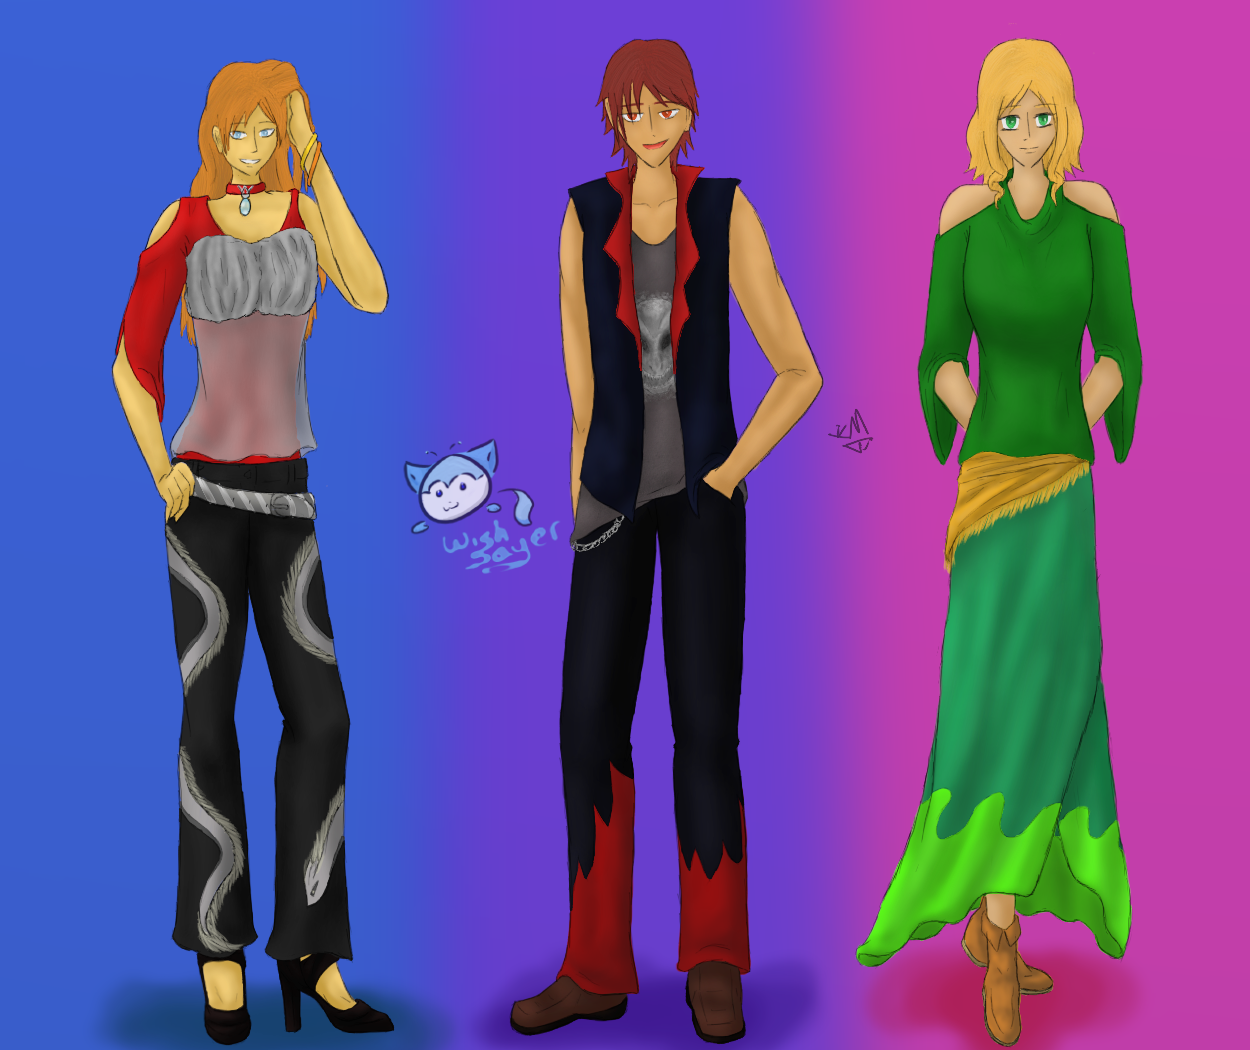 in a fashion mood 6, 7, and 8 by Wishsayer